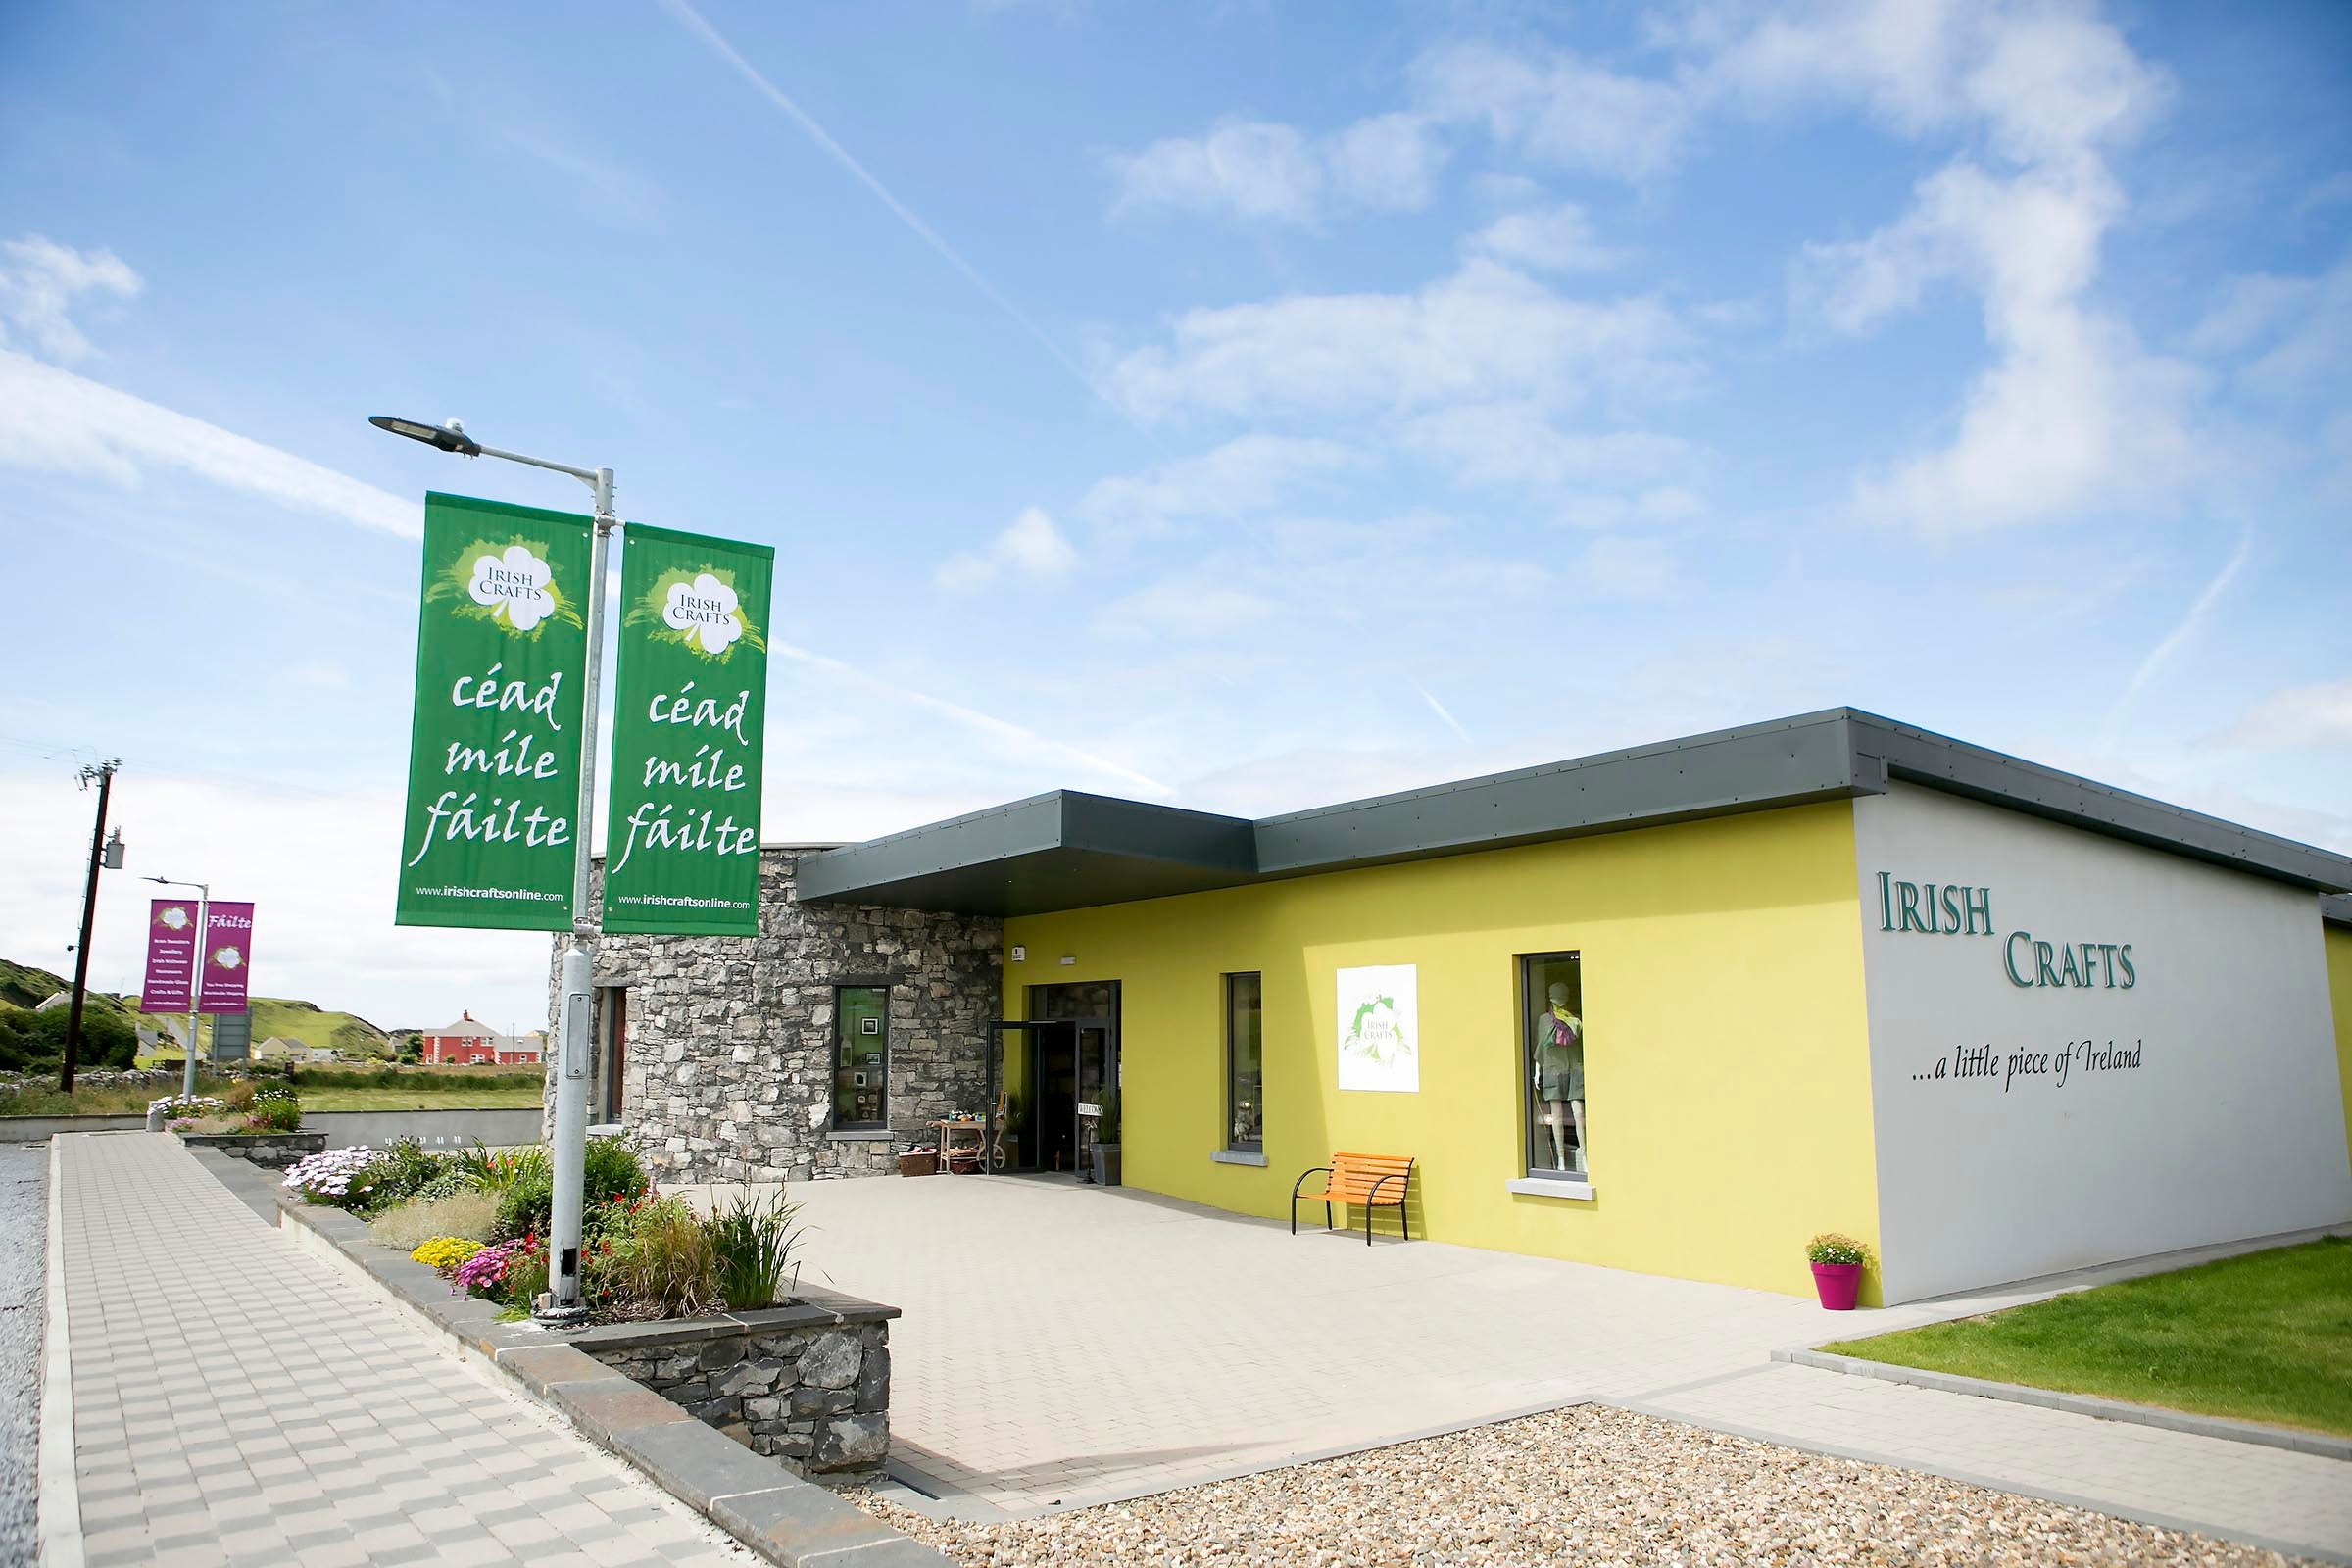 Outside view of Irish Crafts in Doolin